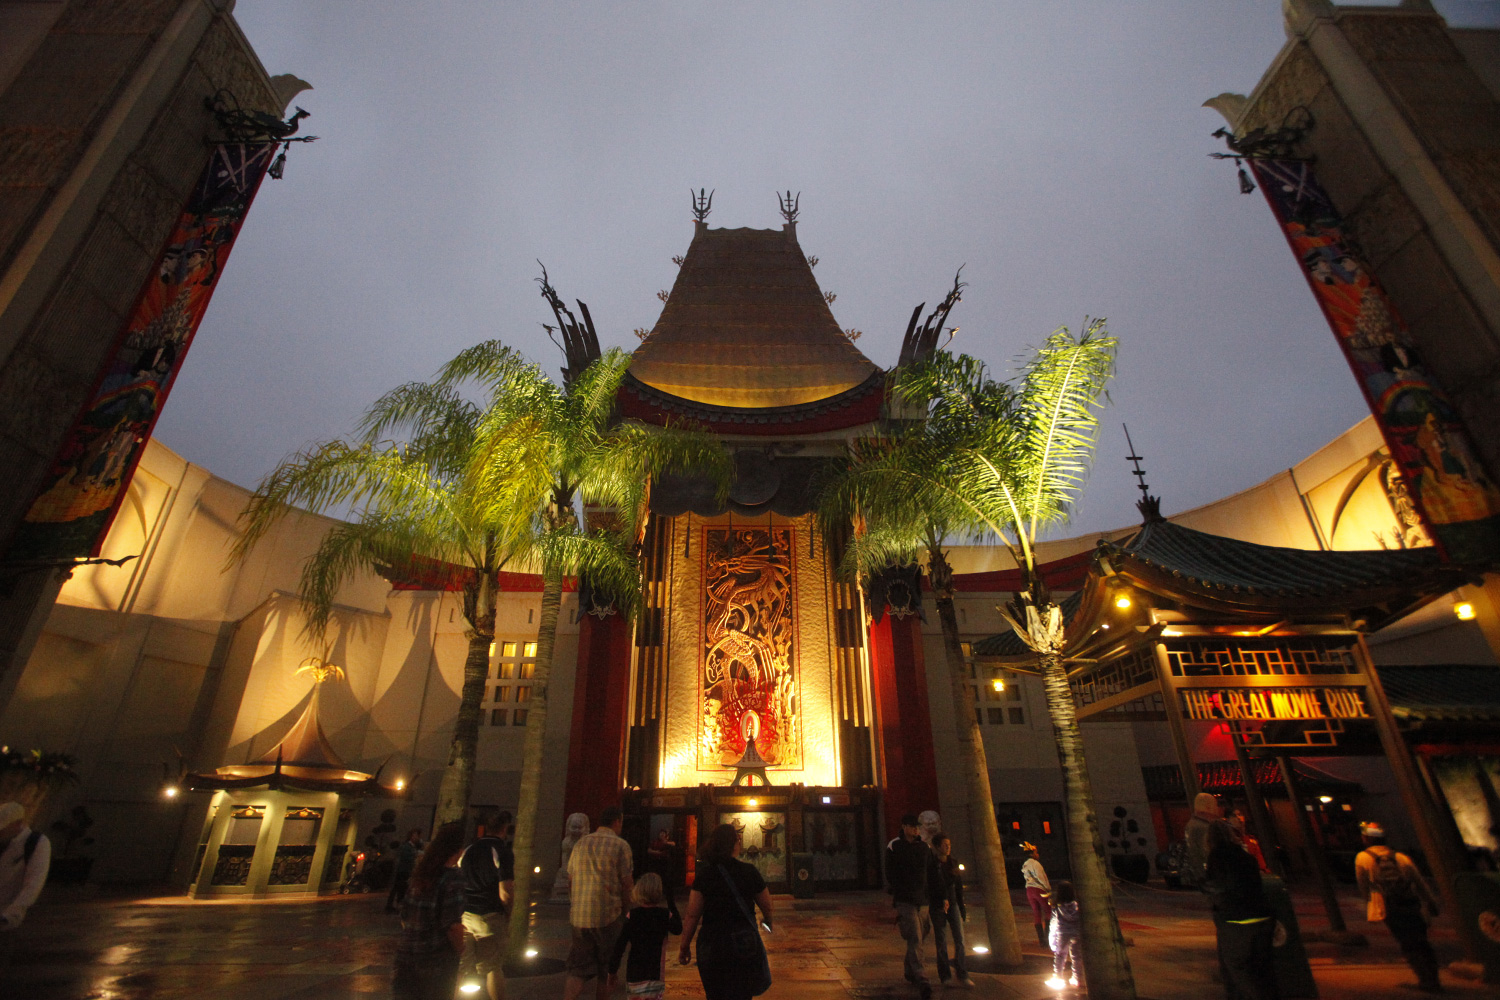 Remembering The Great Movie Ride